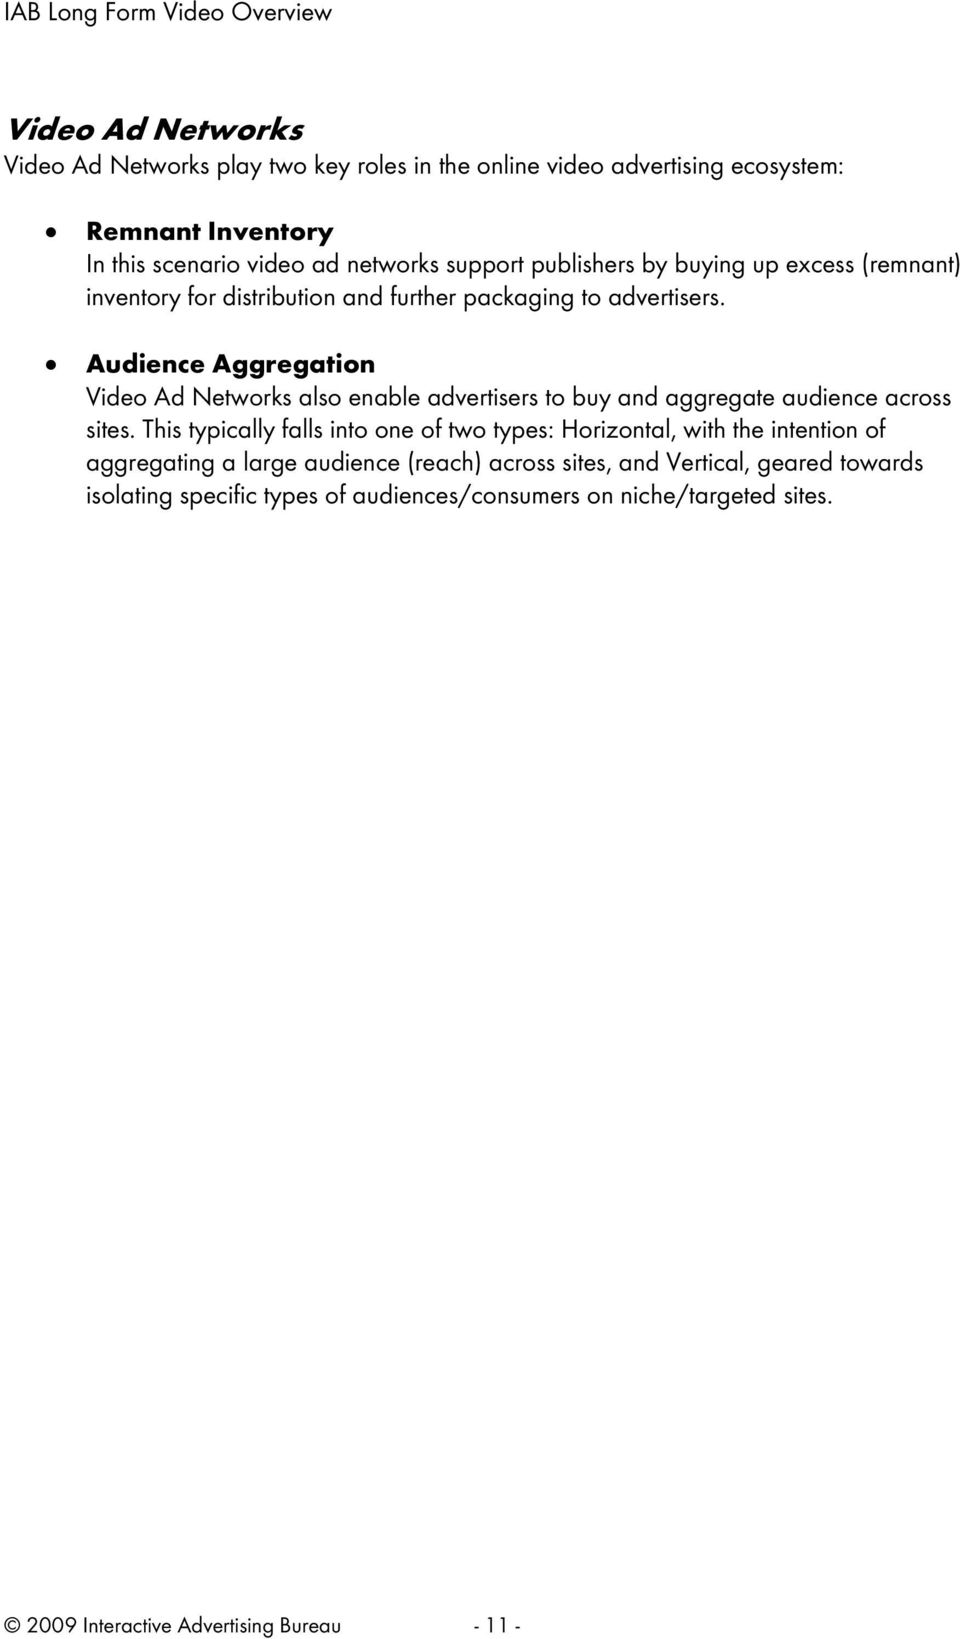 Audience Aggregation Video Ad Networks also enable advertisers to buy and aggregate audience across sites.